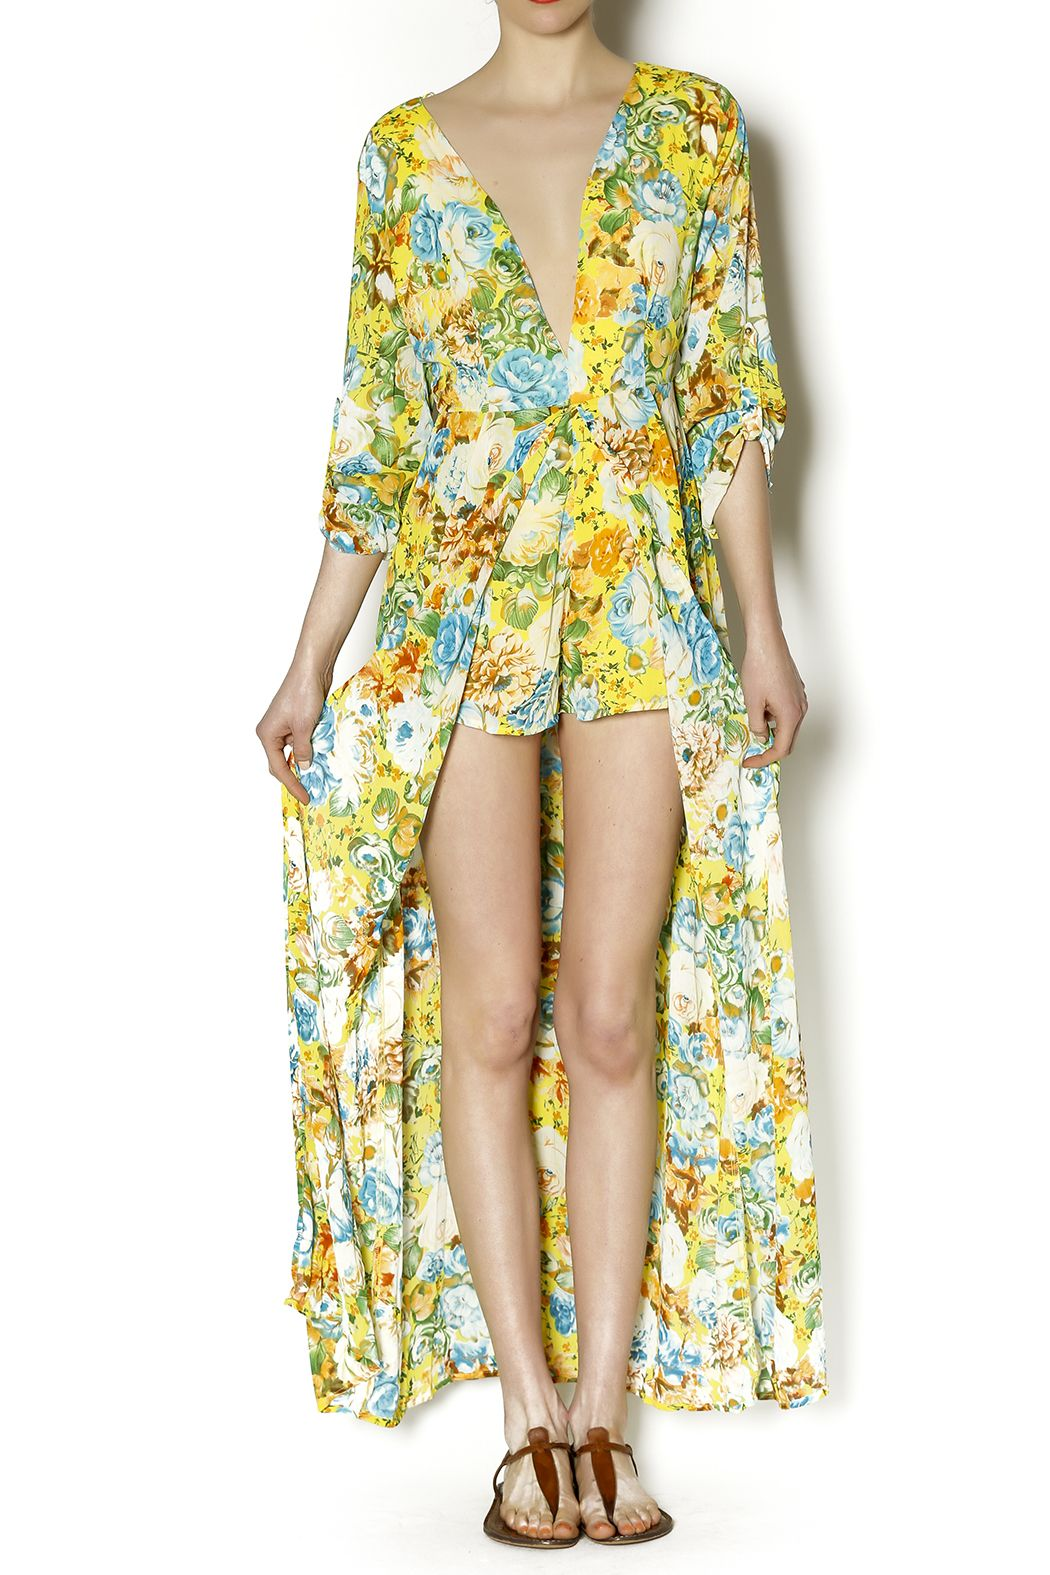 097073f0a92f Floral printed romper with a maxi skirt overlay. This romper features lined  shorts